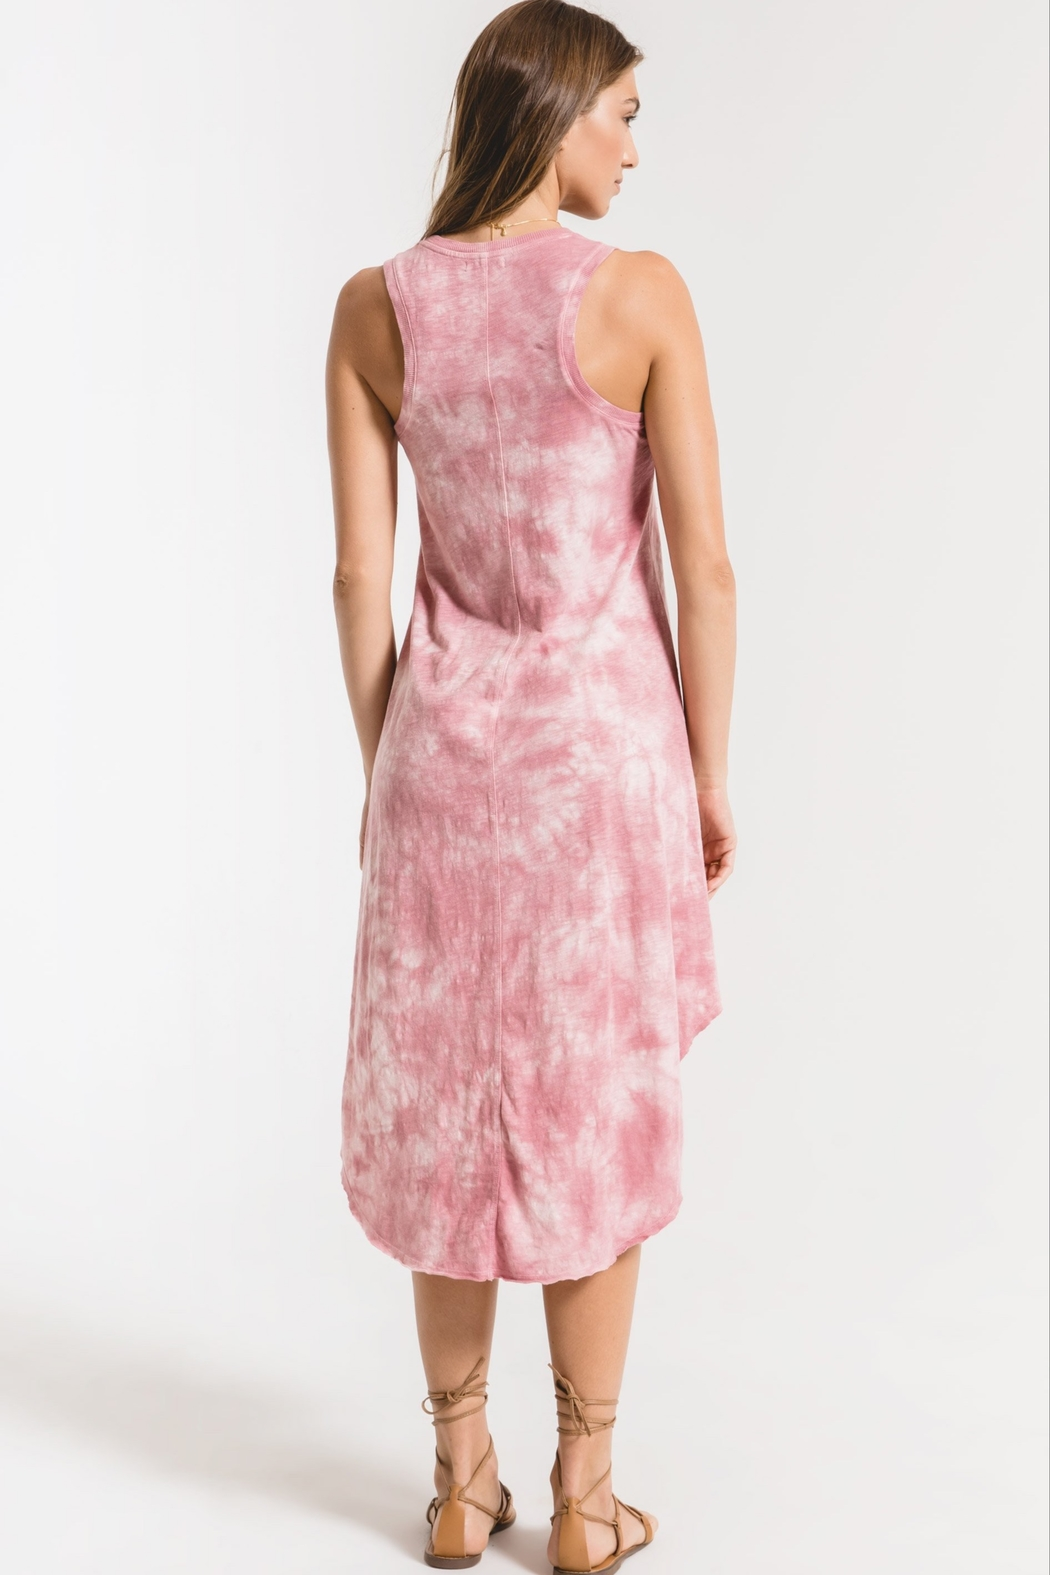 z supply Cloud Tie Dye Maxi Dress - Side Cropped Image